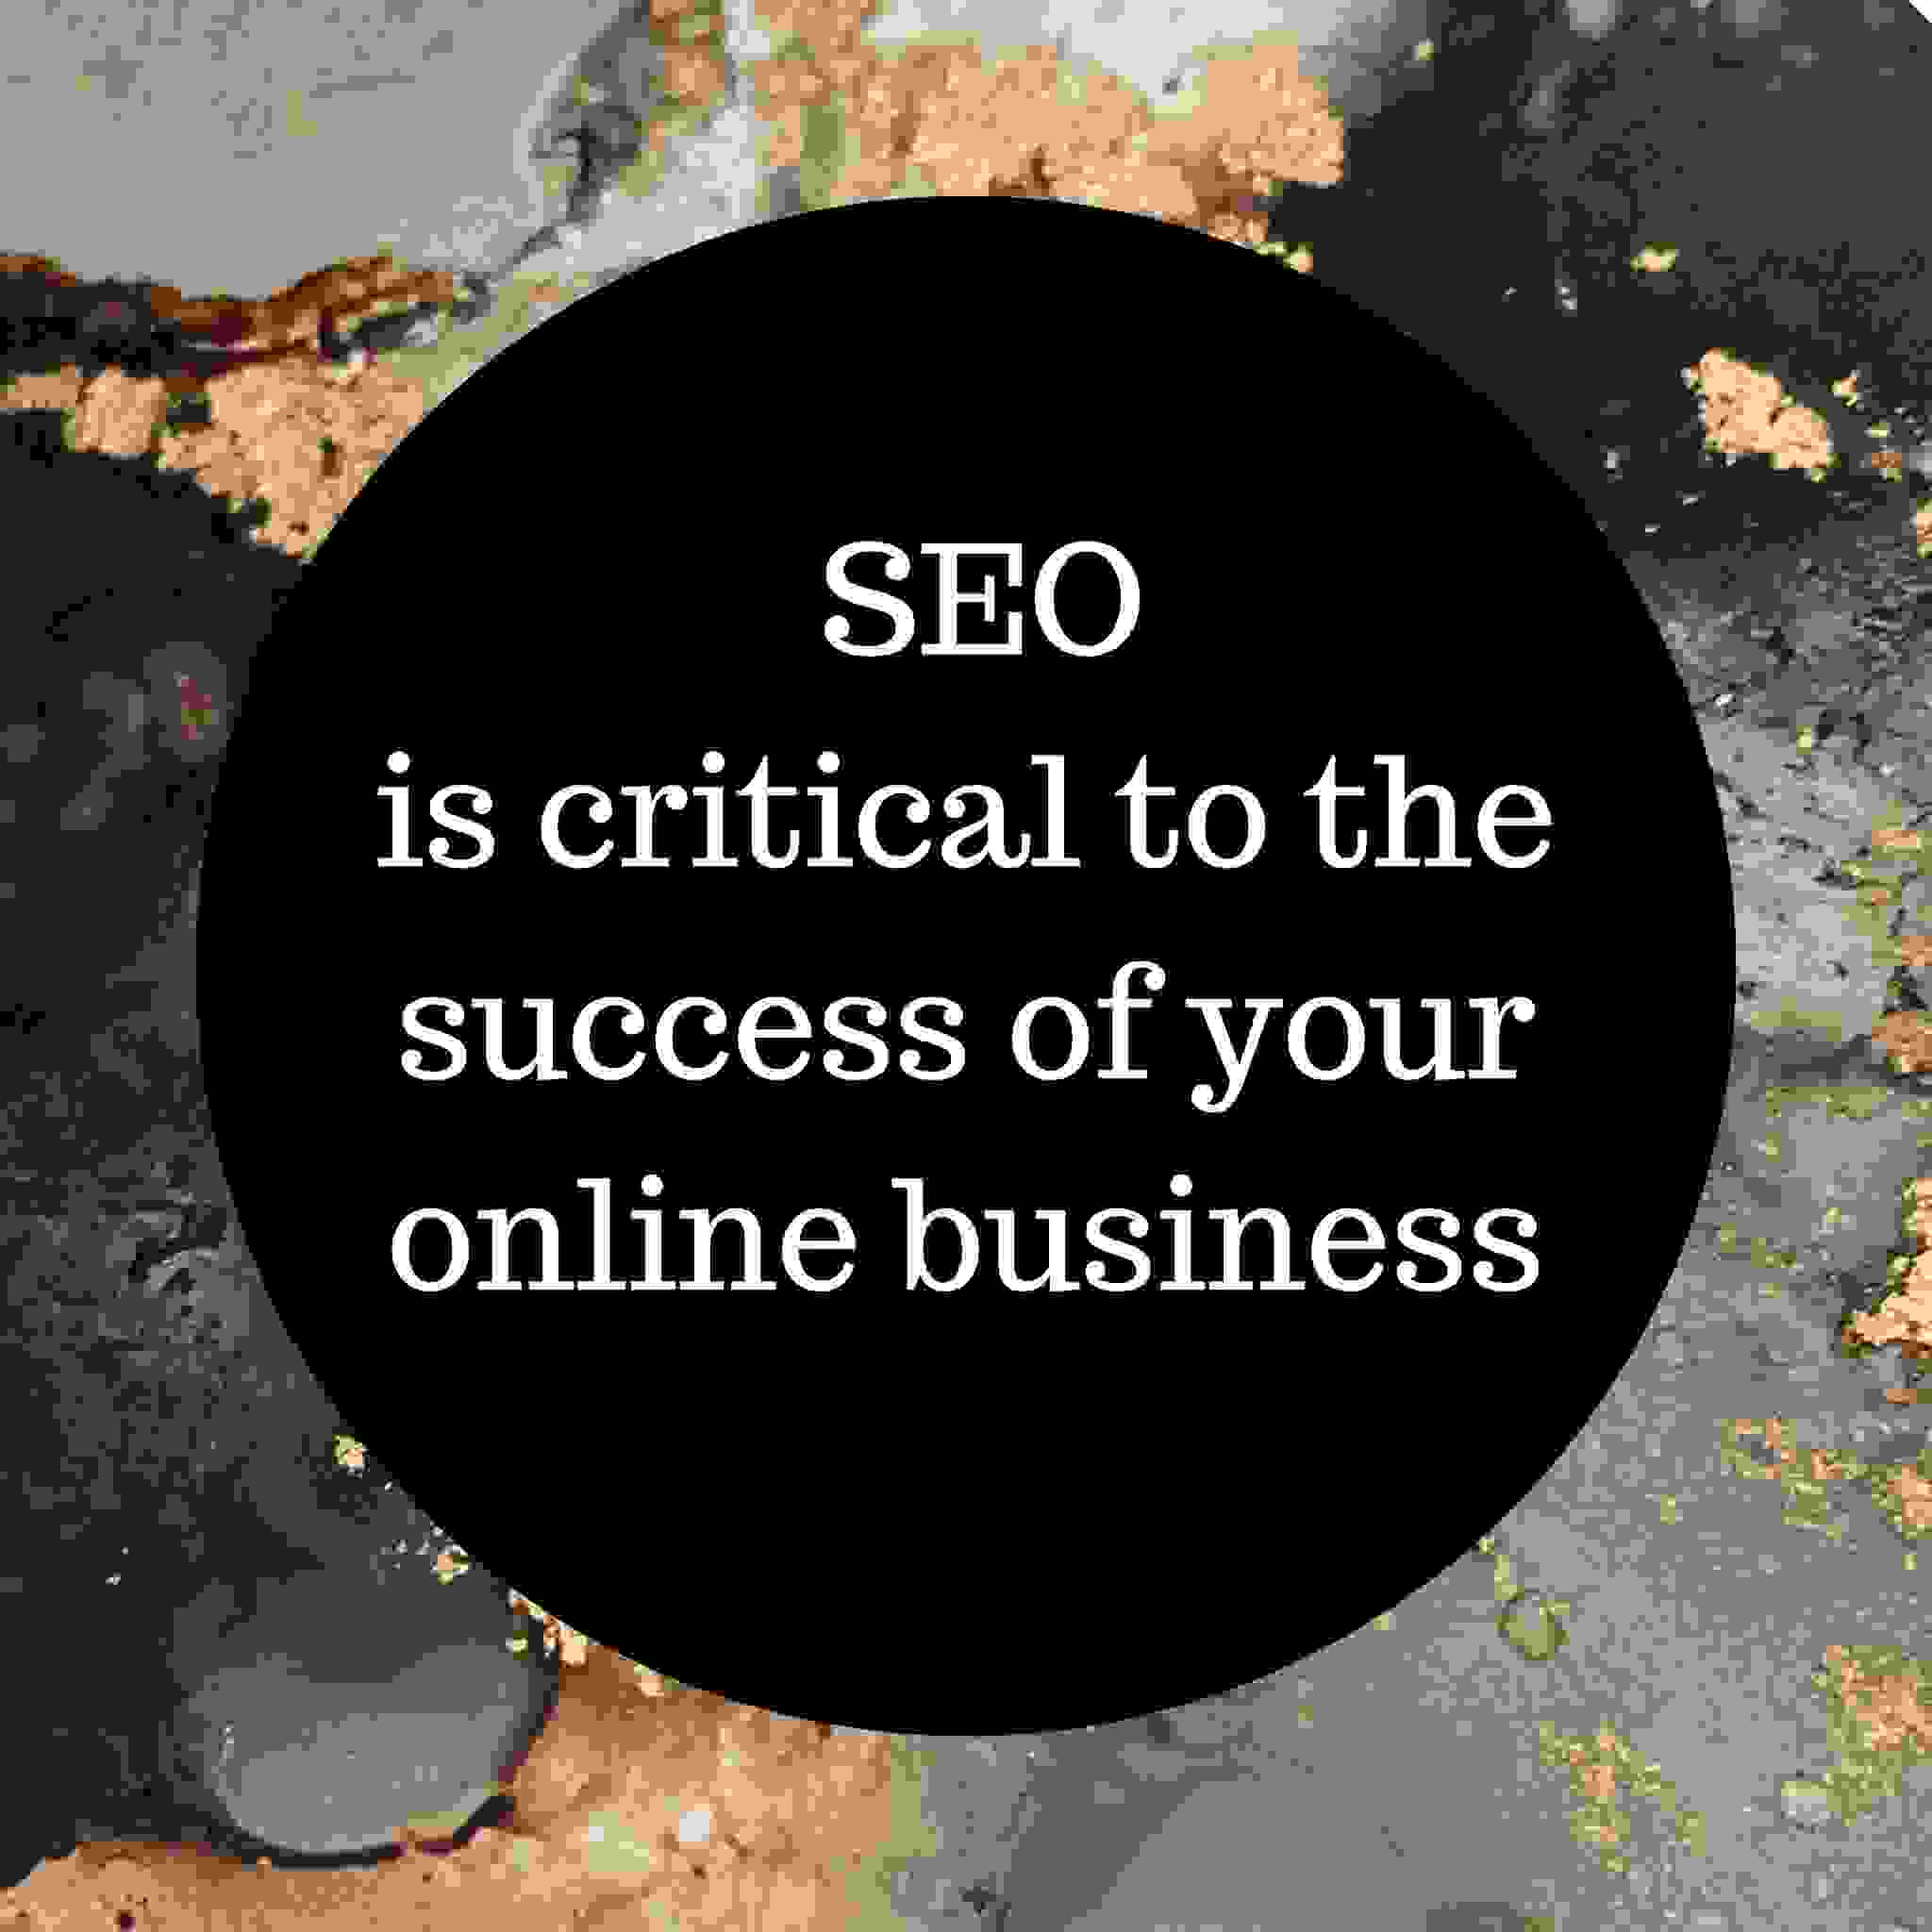 Search Engine Optimisation service Sydney Get found online Ecommerce business seo